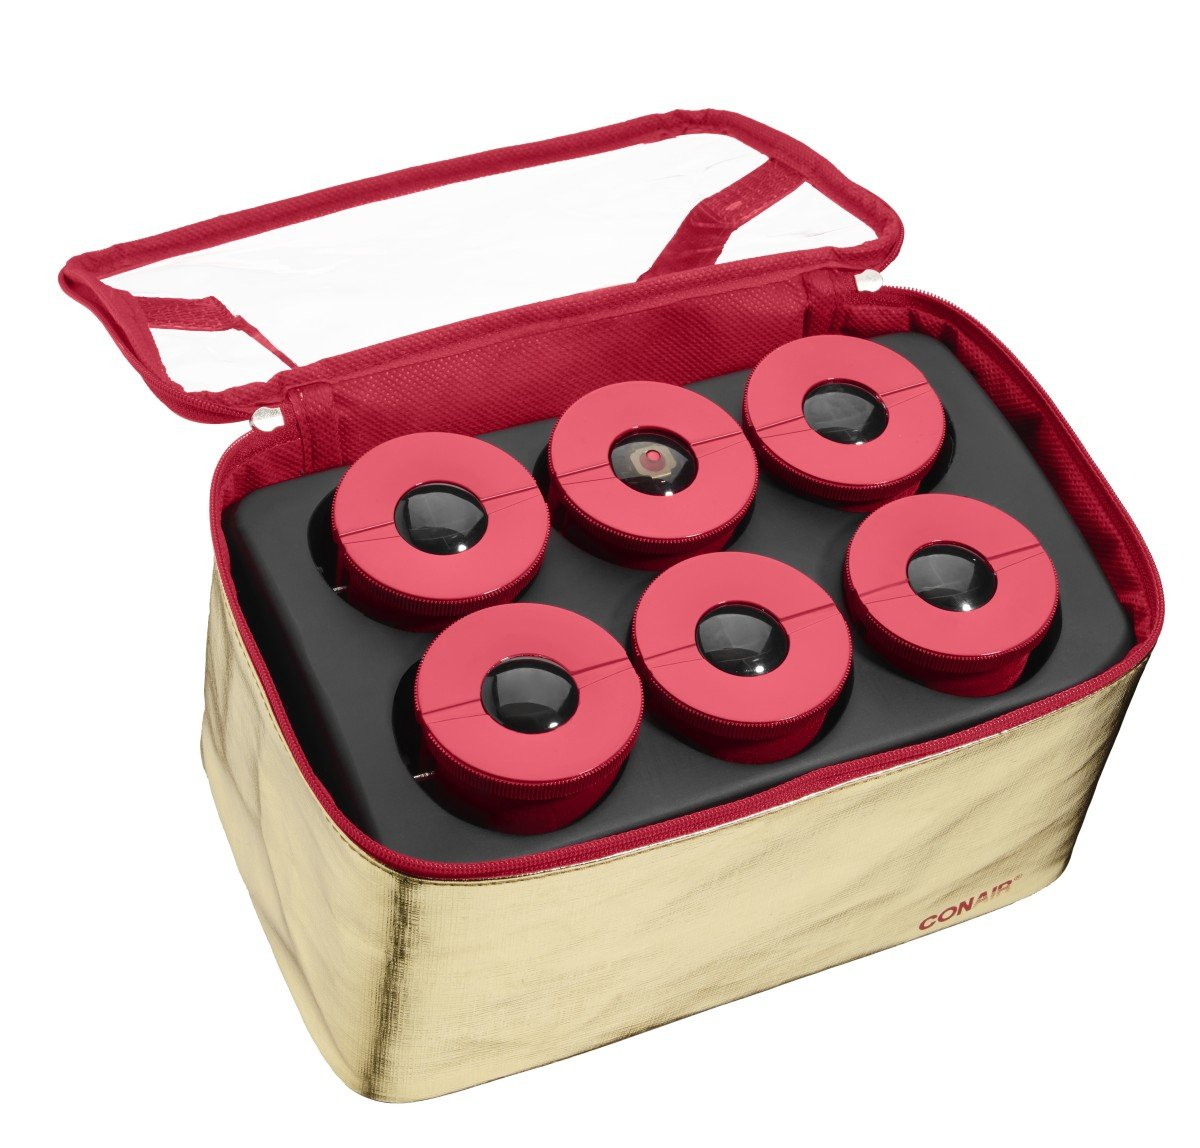 Infiniti Pro by Conair Lift & Volume Hot Rollers for Medium to Long Hair; Extra-Long 2-inch Hair Rollers